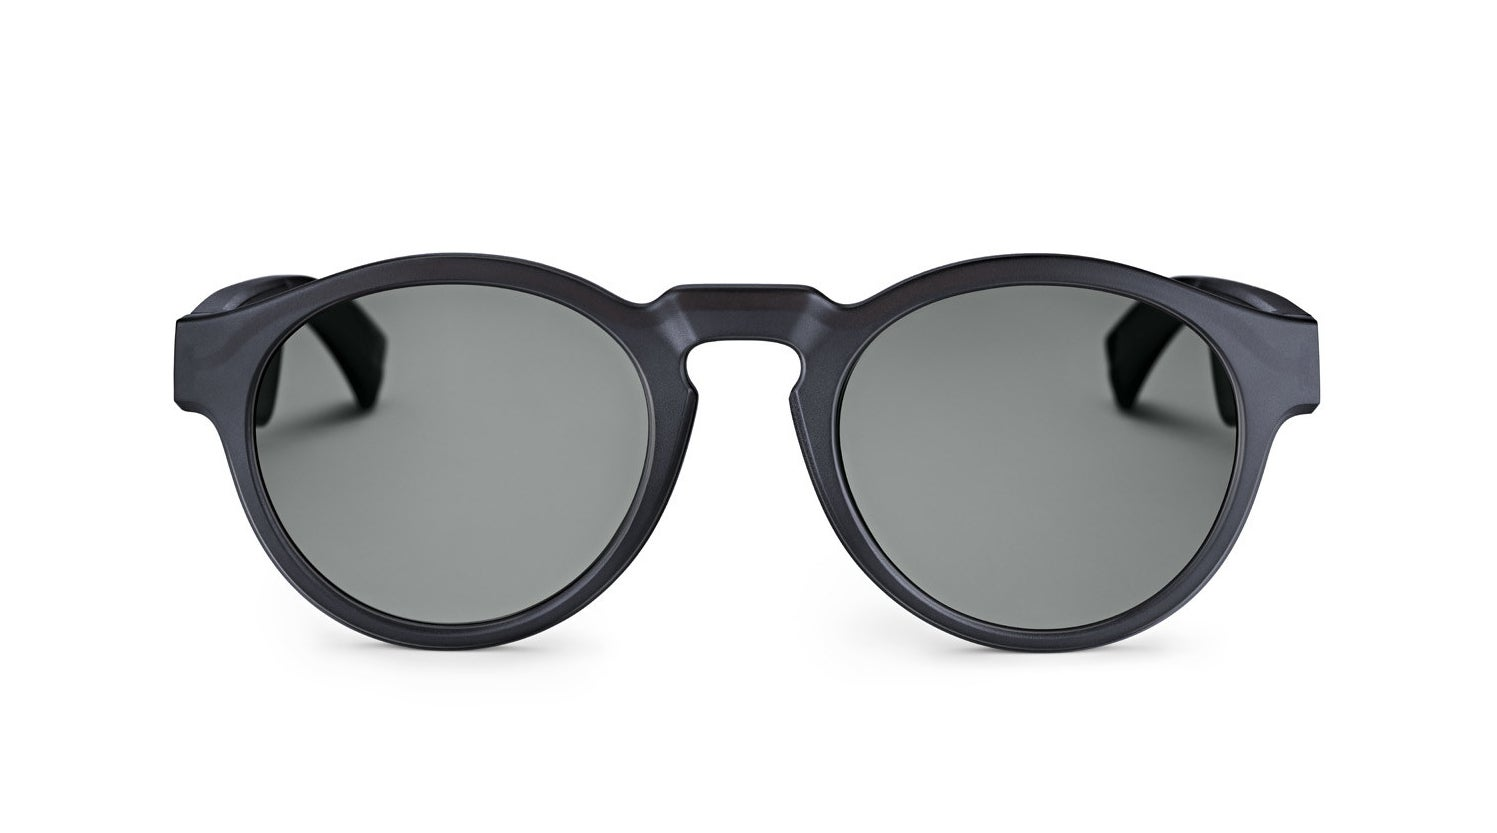 The gray rounded sunglasses